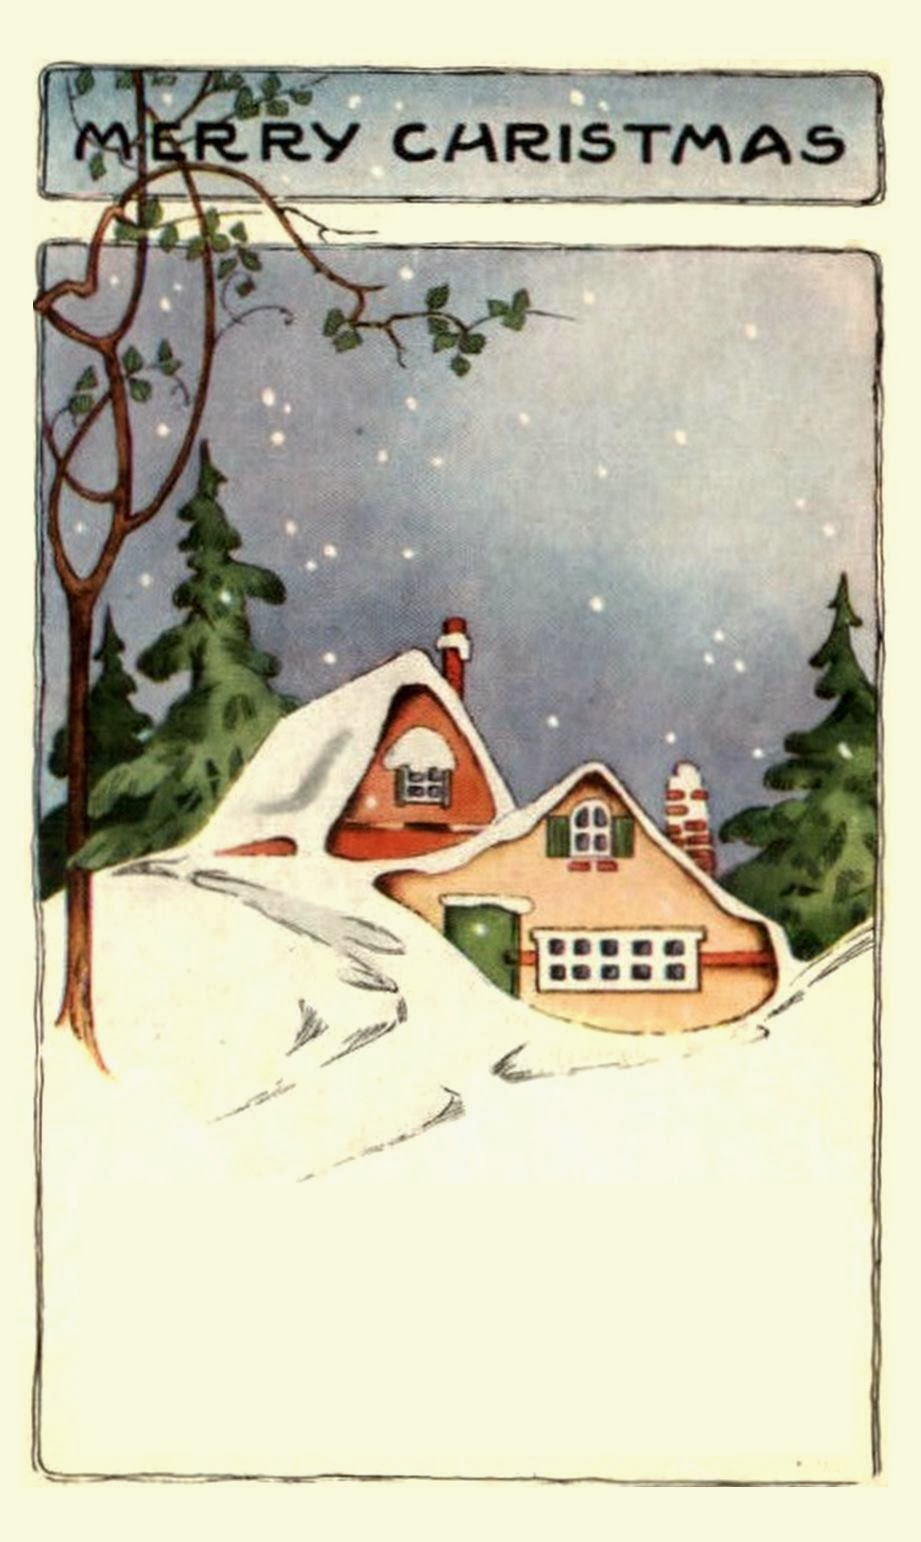 Vintage Christmas Cozy Cottages and a Snowman  Free Christmas Images